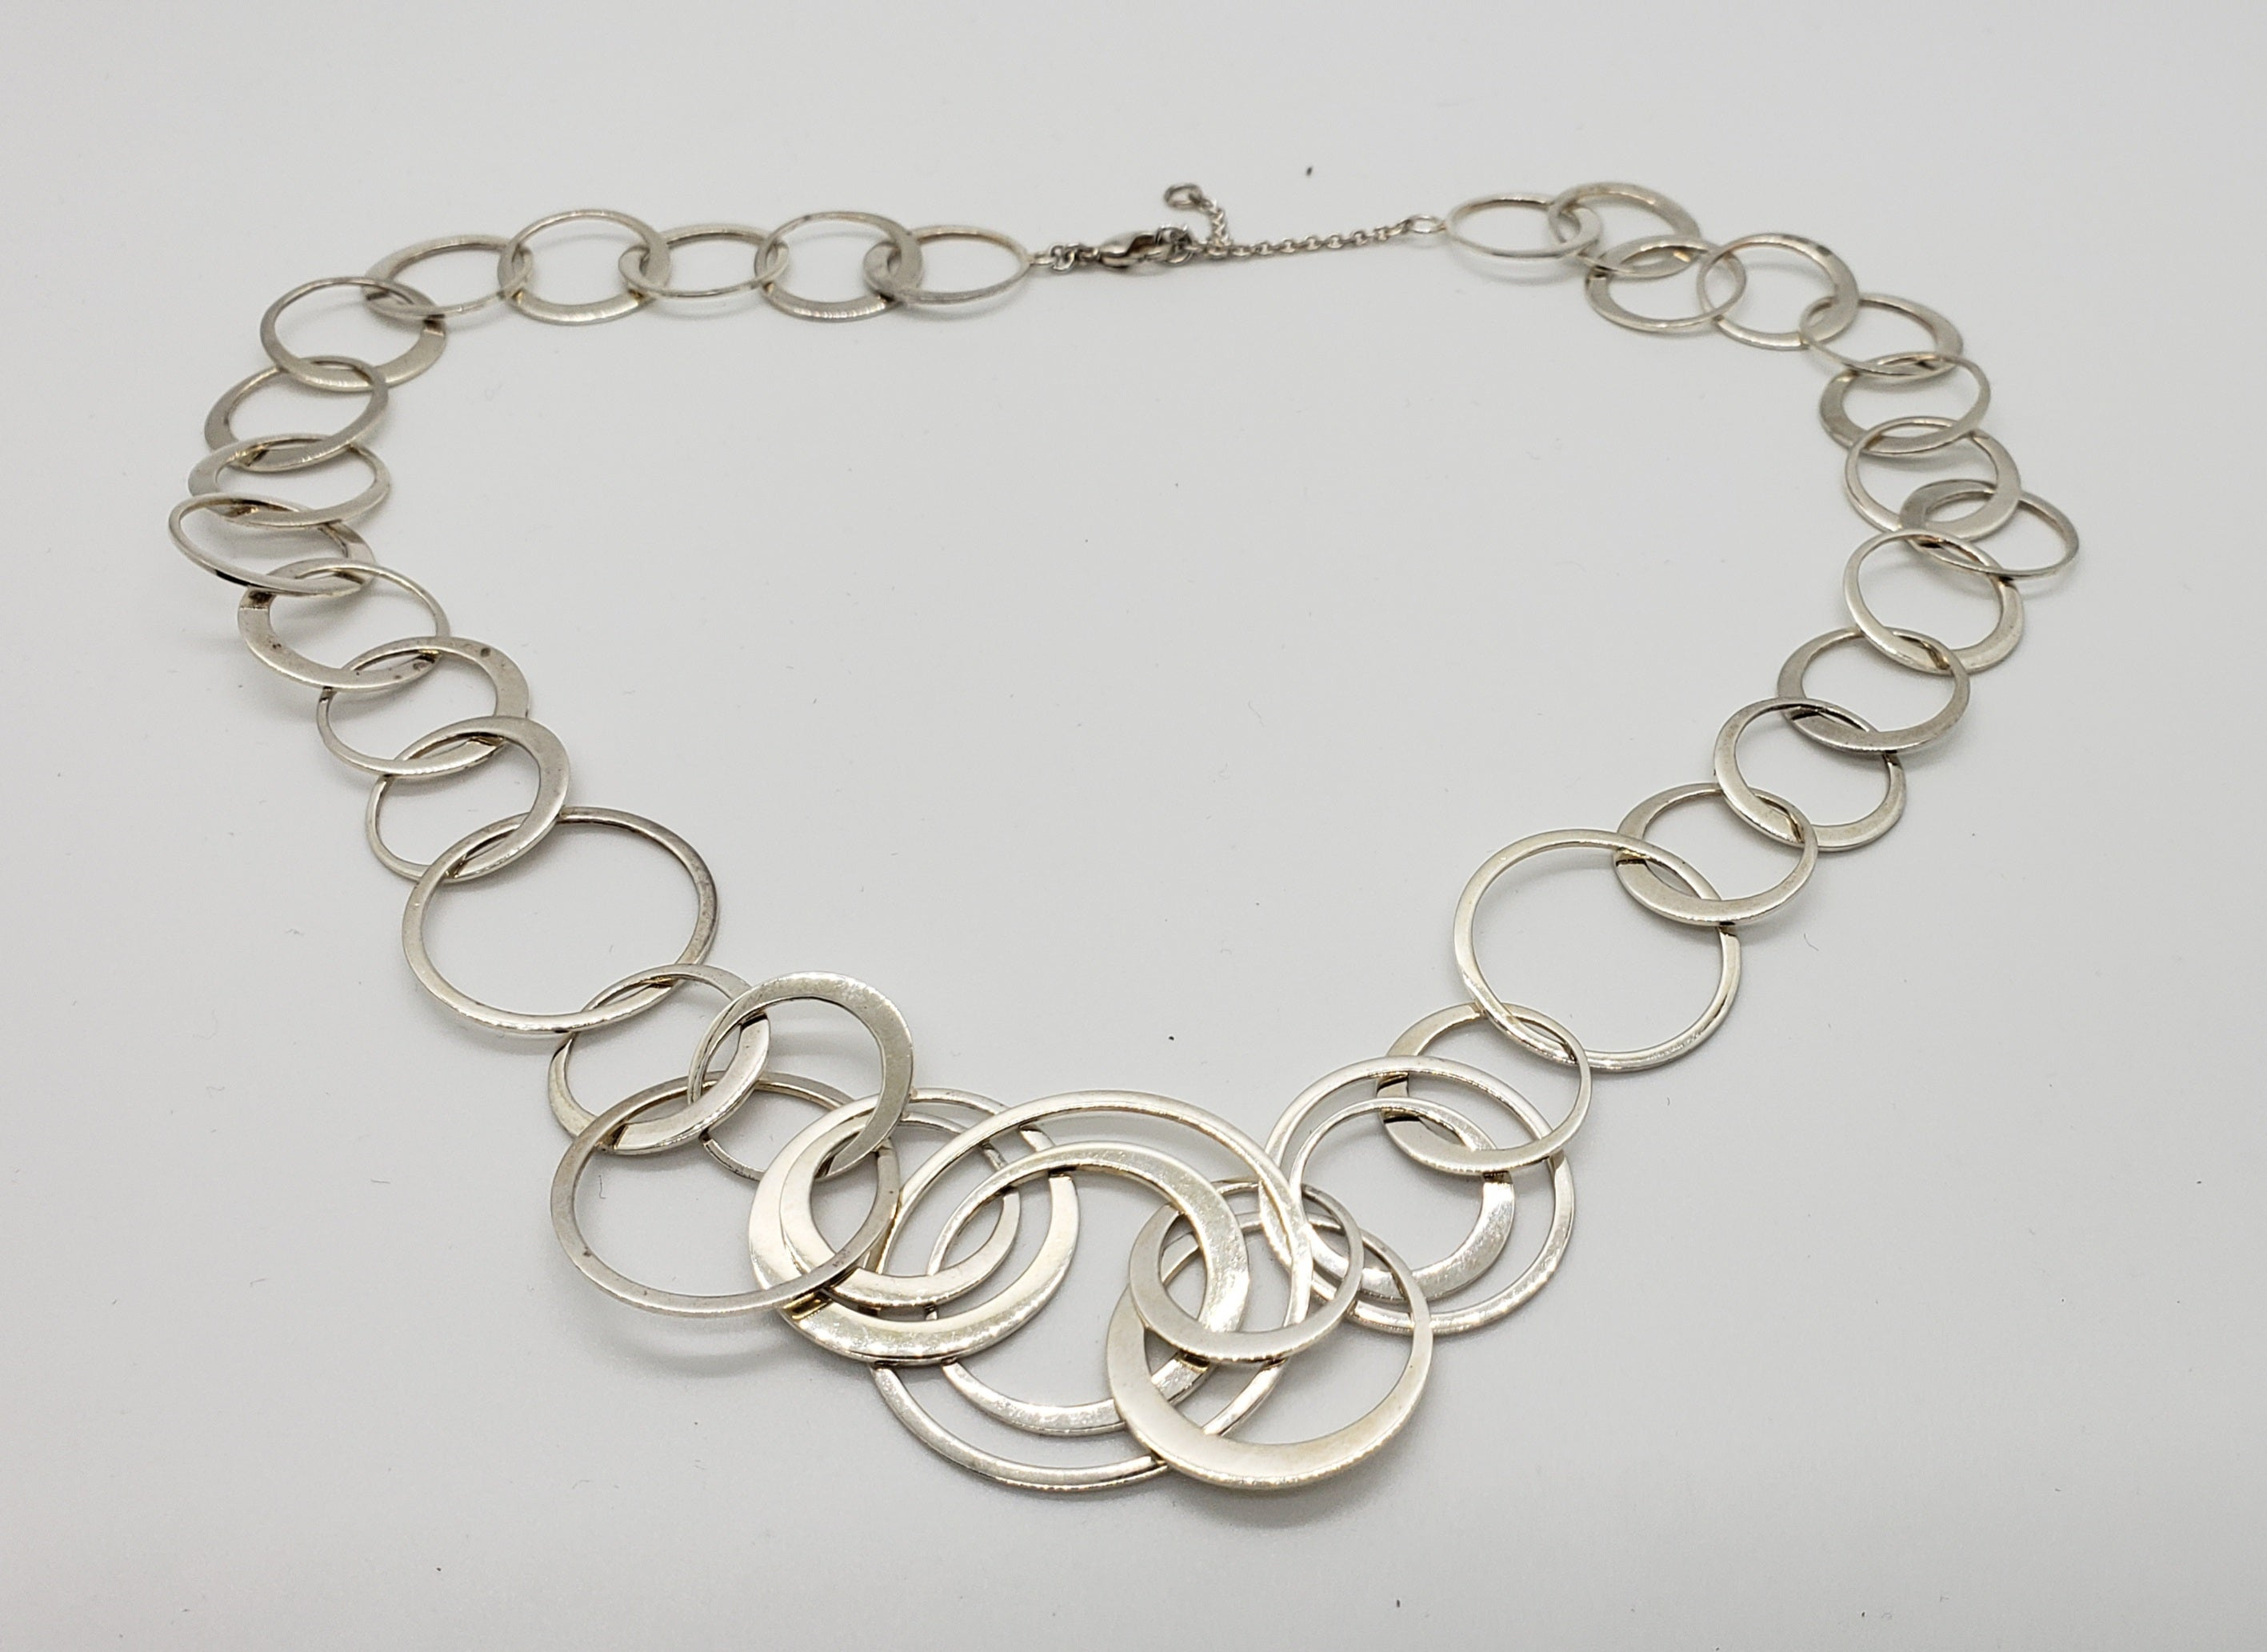 Adjustable Silvertone Link Necklace - Macomb County ReStores